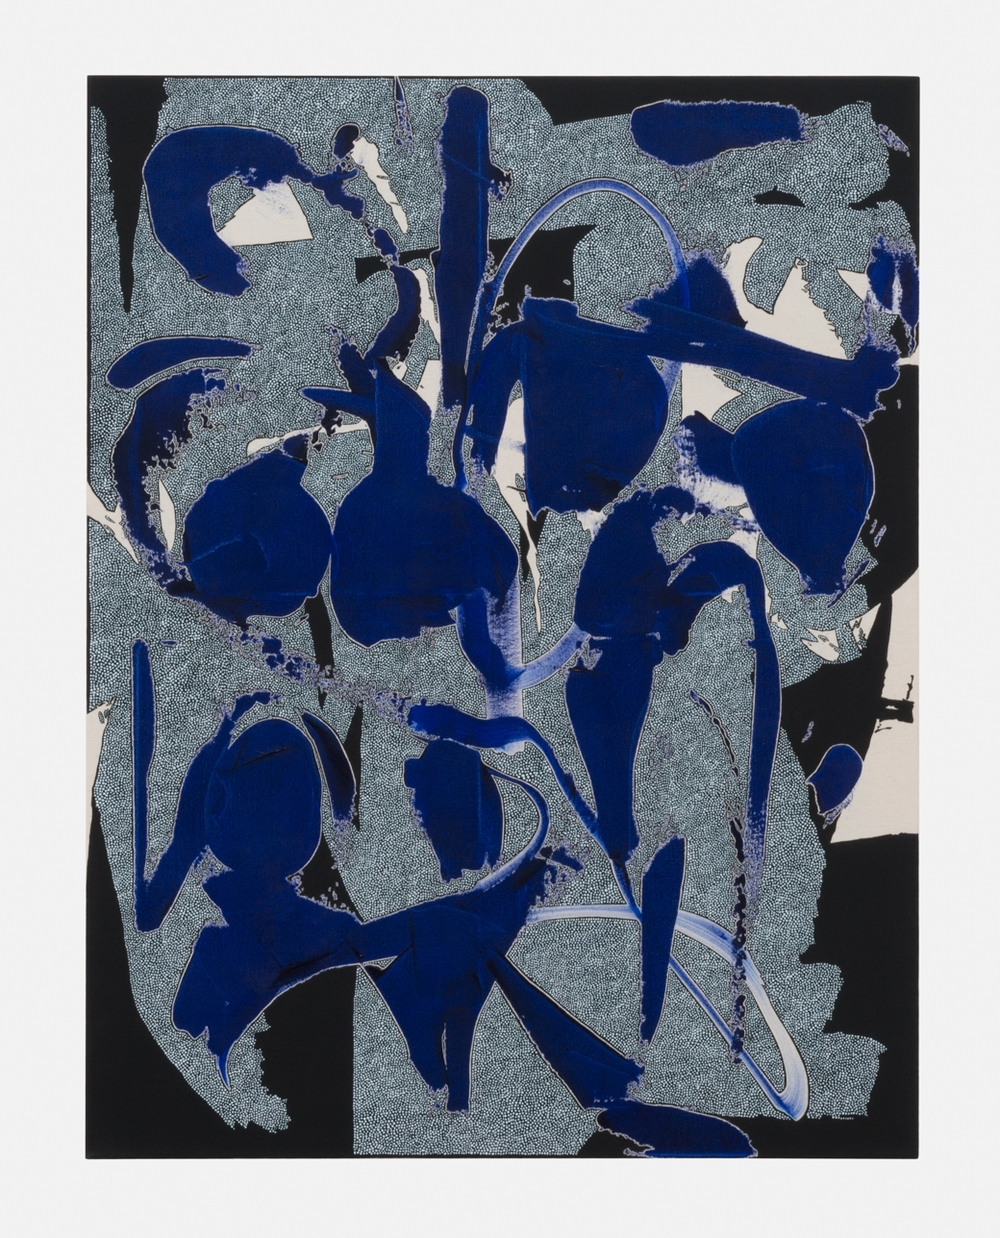 Zak Prekop Unmeasured Pattern (Blue) 2016 Oil on canvas 35 x 27 in (88.9h x 68.58w cm) ZP345